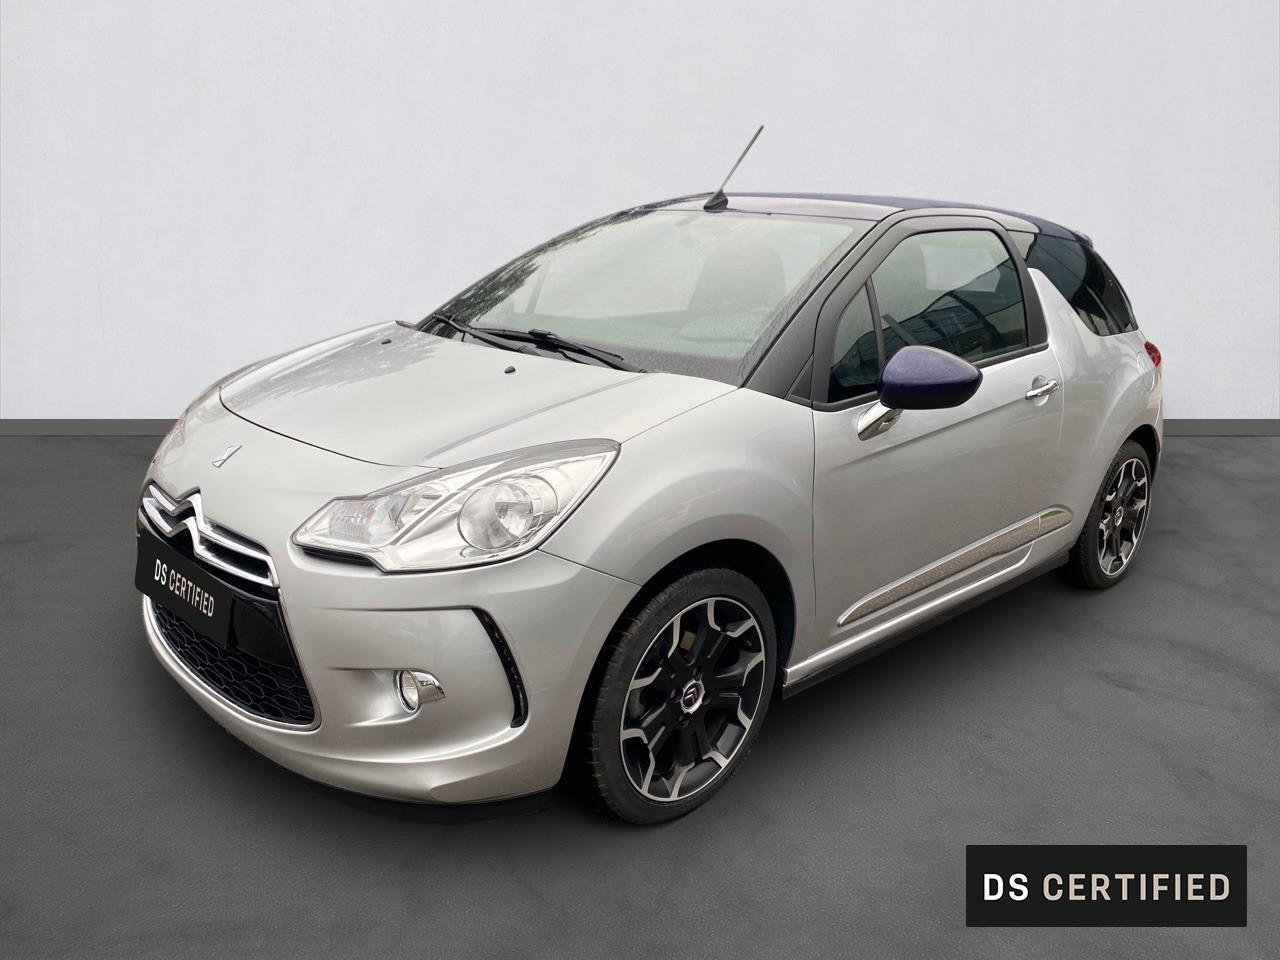 Ds DS 3 Cabrio DS 3 CABRIOLET PureTech 82ch So Chic